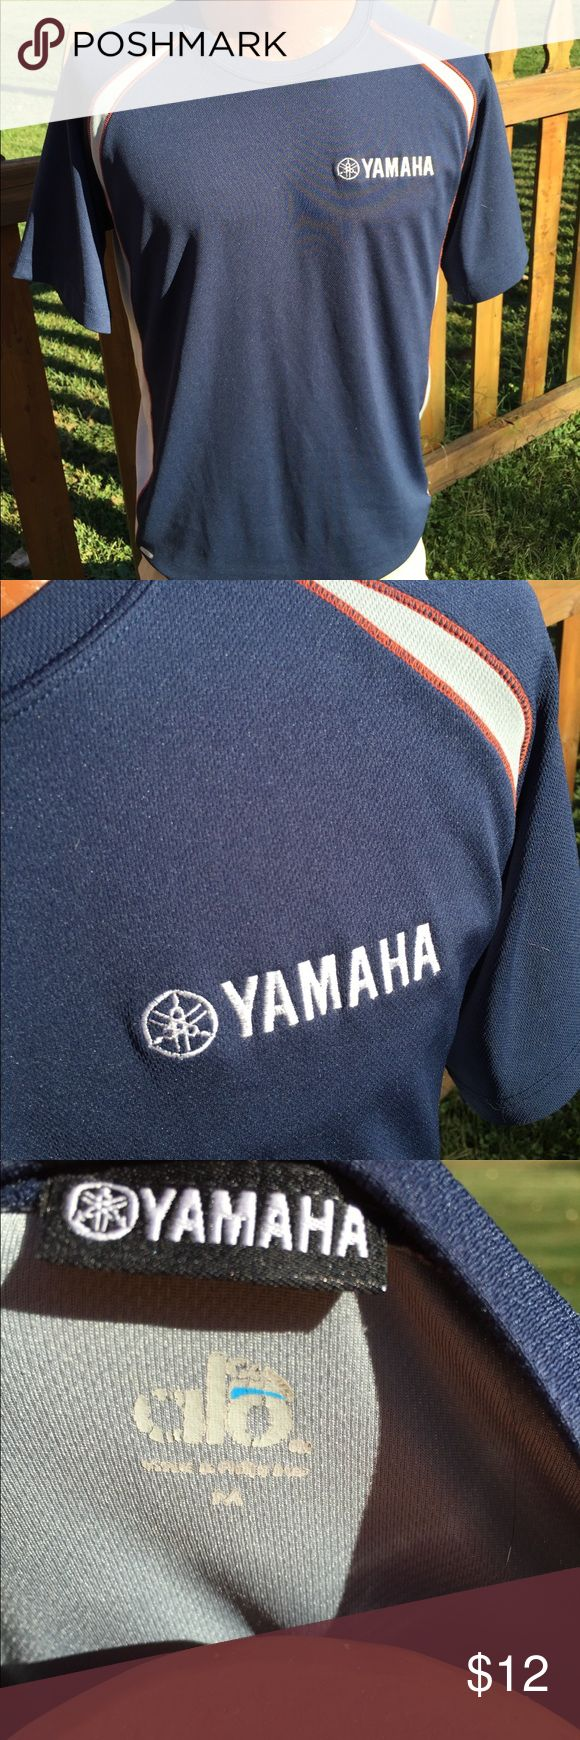 Yamaha Mens Shirt Size Medium Size medium. Super gently preowned. Be sure to view the other items in our closet. We offer  women's, Mens and kids items in a variety of sizes. Bundle and save!! We love reasonable offers!! Thank you for viewing our item!! yamaha Shirts